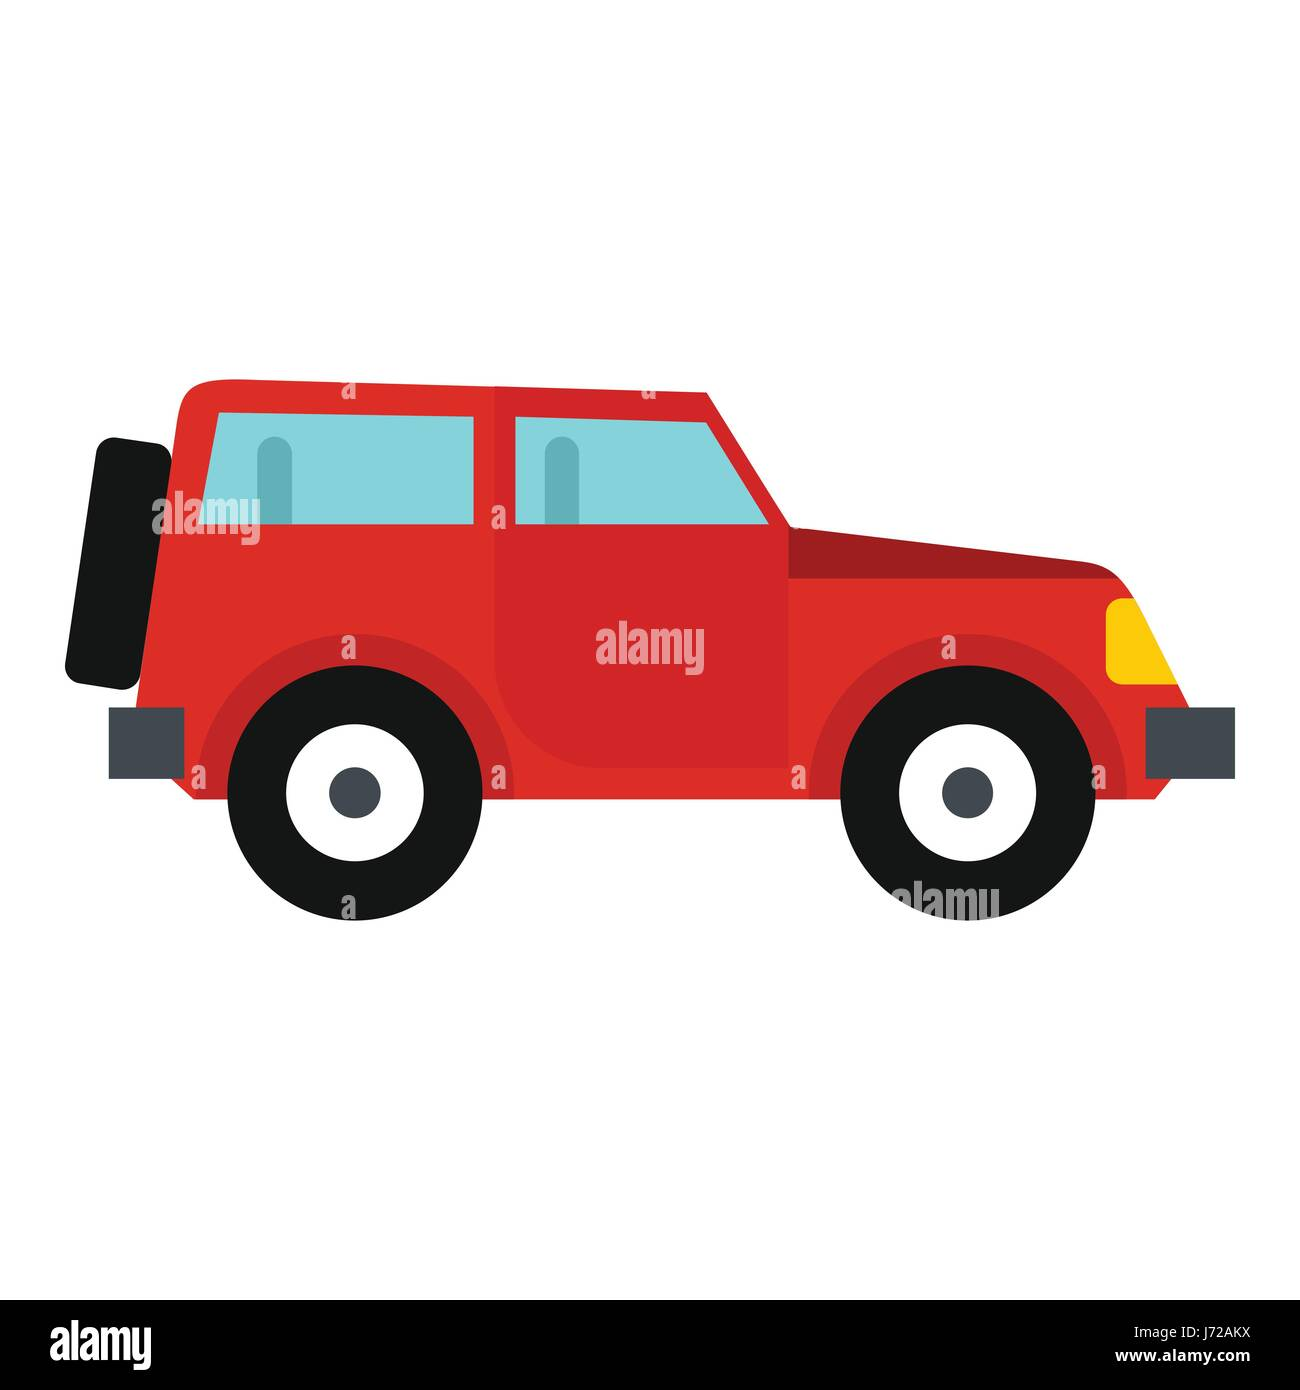 jeep icon flat style stock vector art illustration vector image